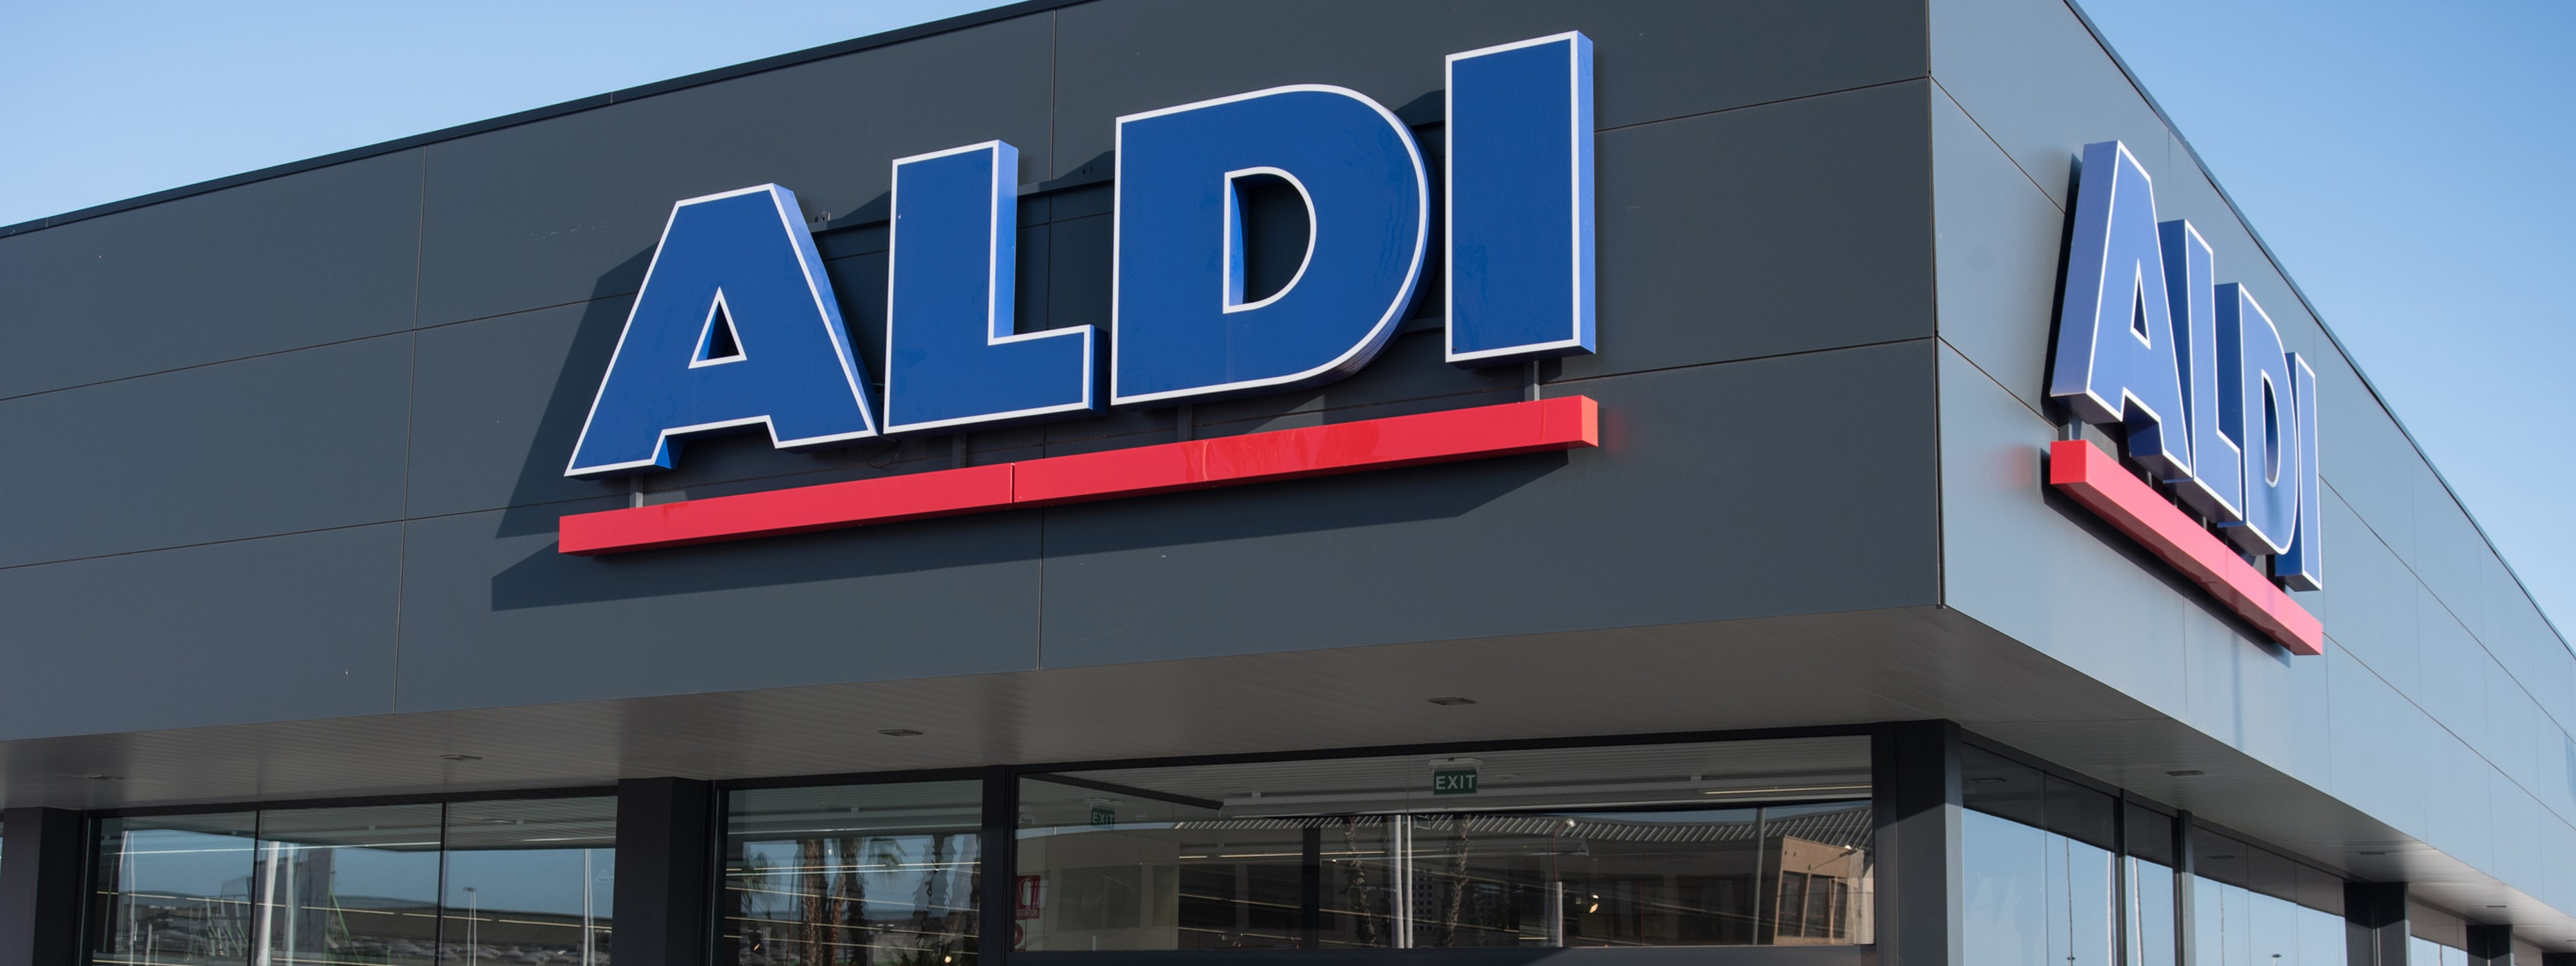 A new Aldi store in Spain. Illustration